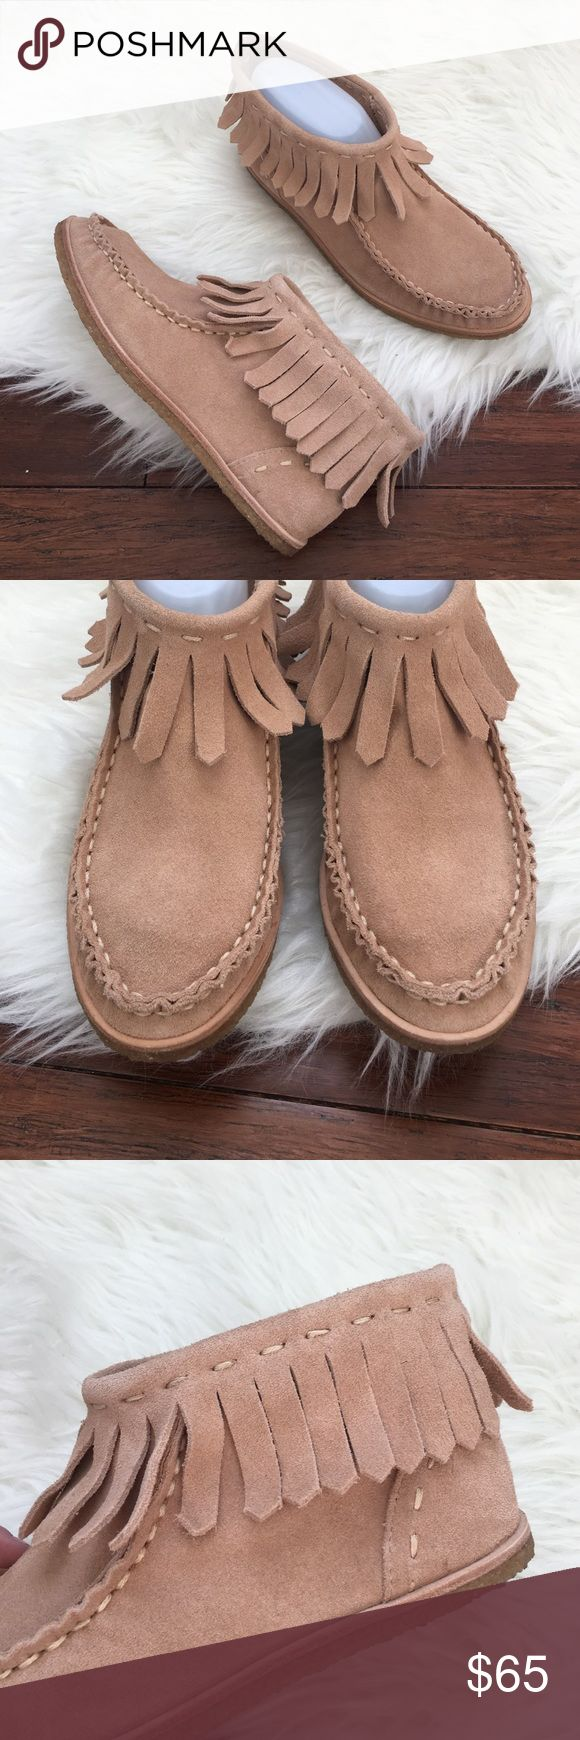 Splendid Suede Fringe Moccasin Ankle Booties Brand new in the box. Never been worn. Made of fine leather. Extremely comfortable and adorable of course! Perfectly on trend! Splendid Shoes Ankle Boots & Booties